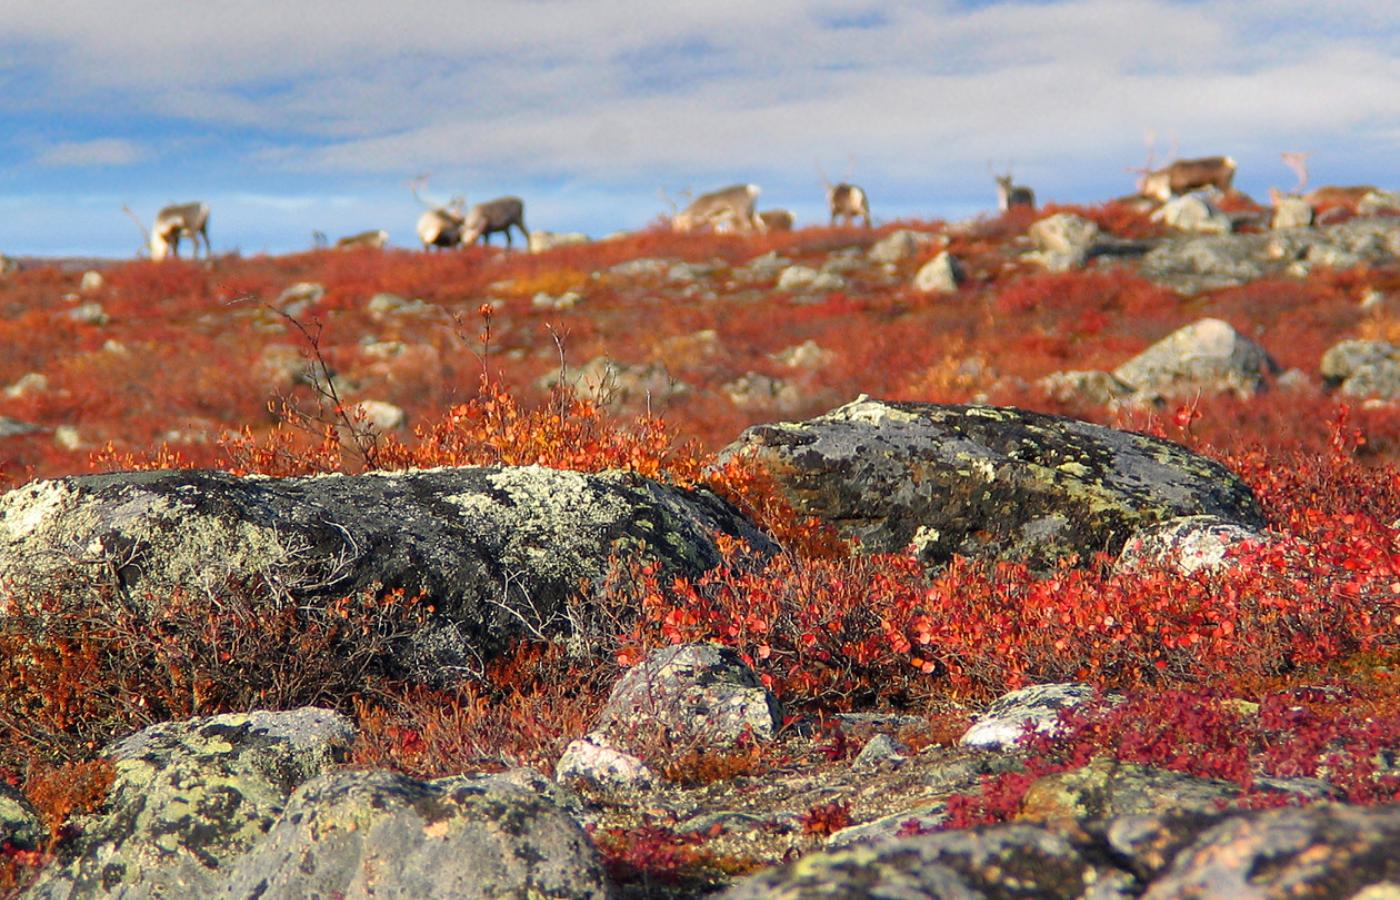 The Barrenlands explode with colour in the fall in Canada's Northwest Territories